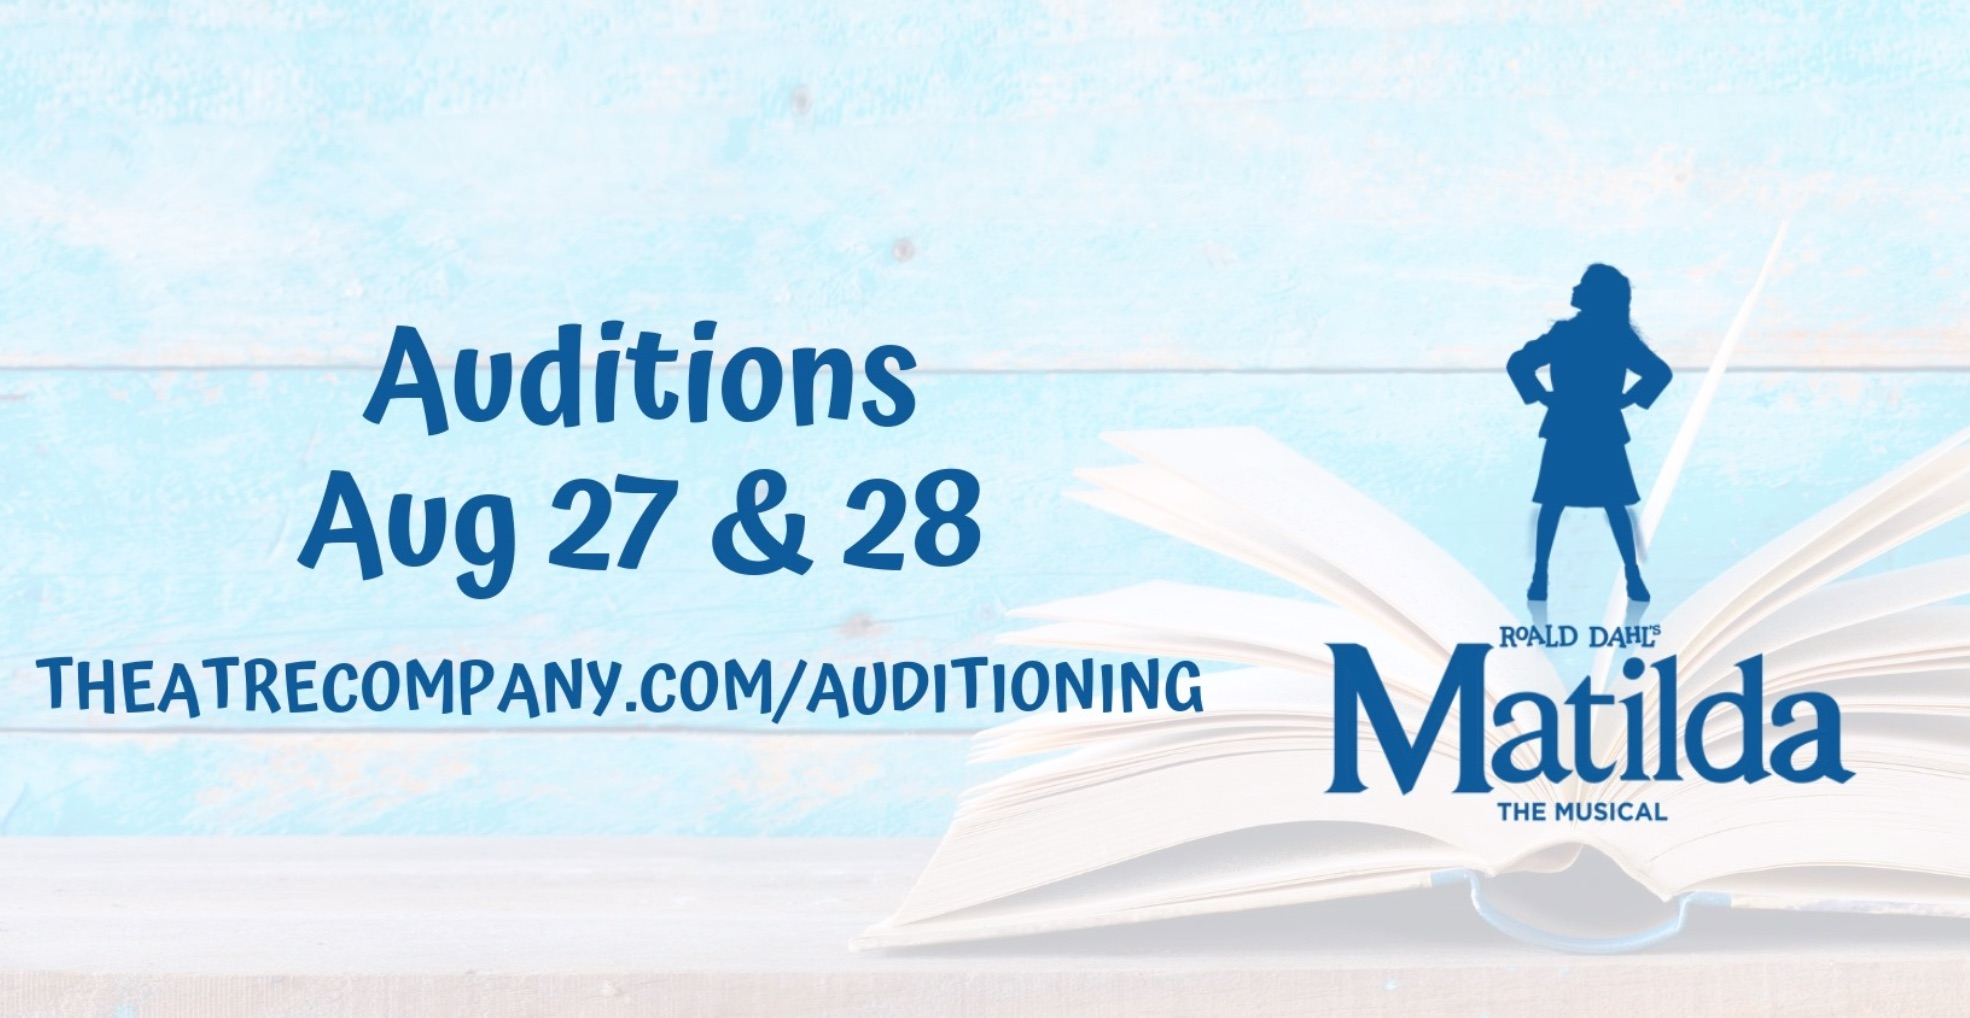 Auditions for Matilda, the musical, by The Theatre Company, Bryan